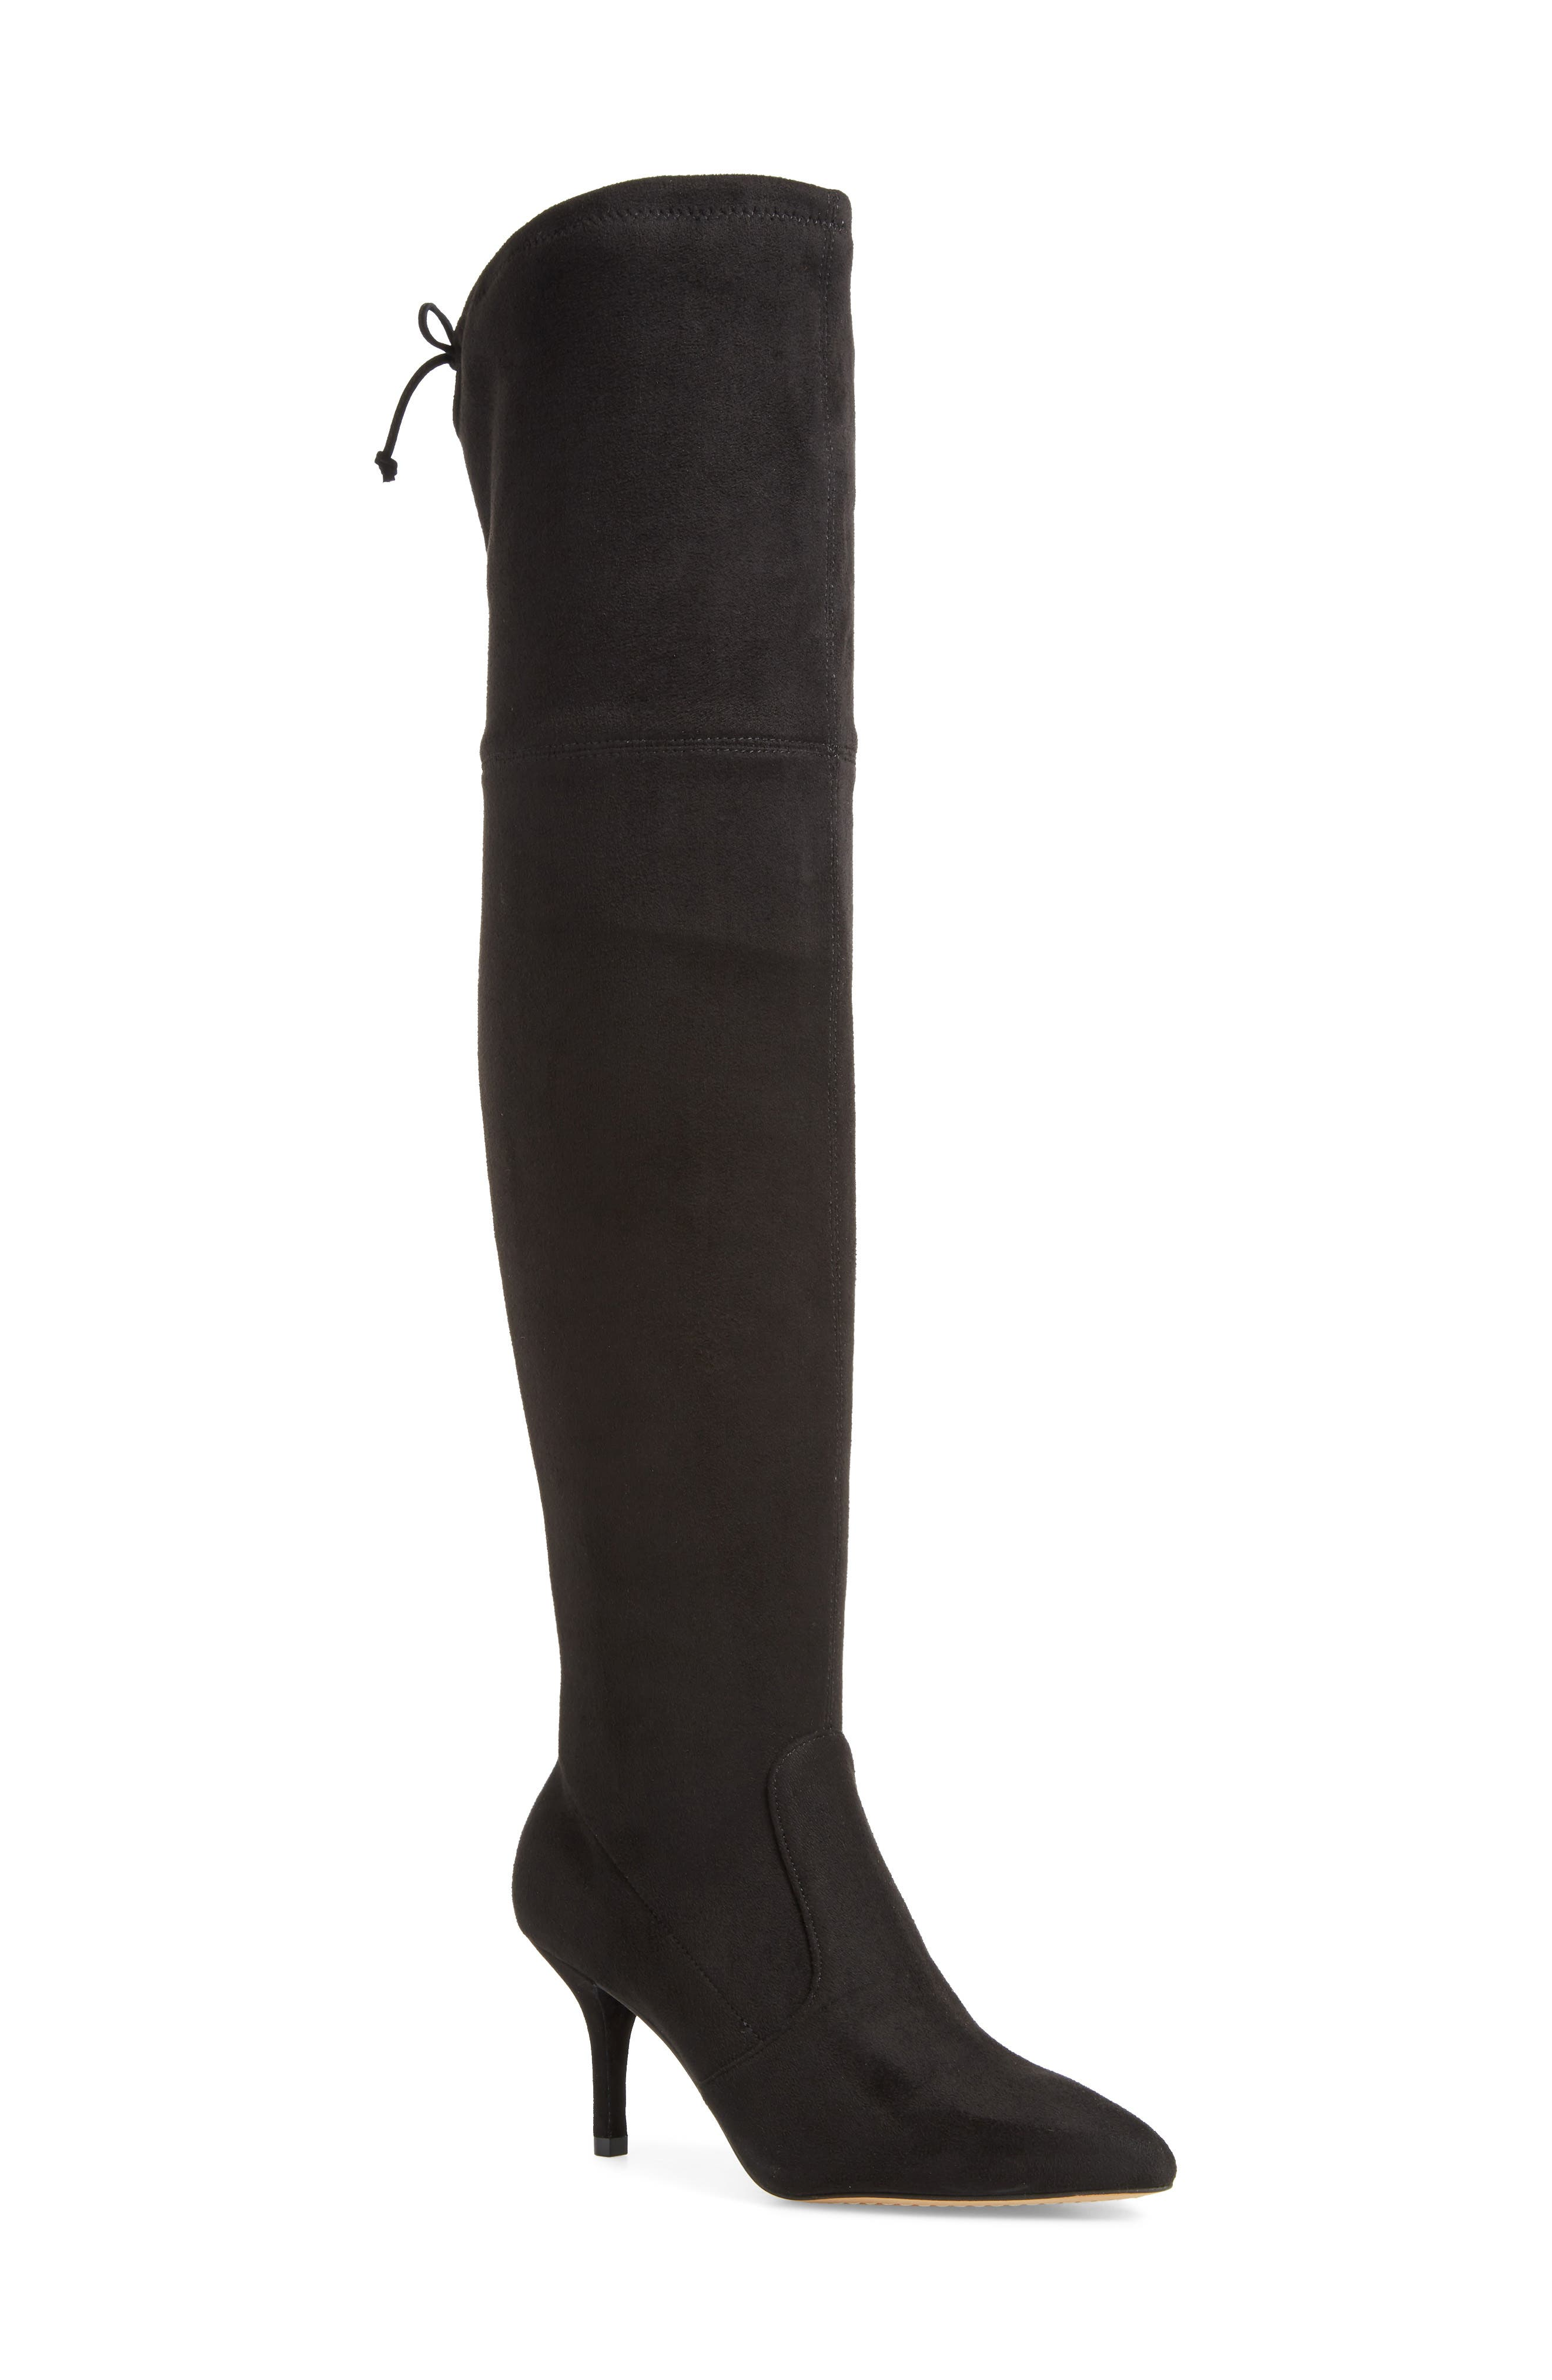 VINCE CAMUTO Ashlina Over the Knee Boot, Main, color, 001